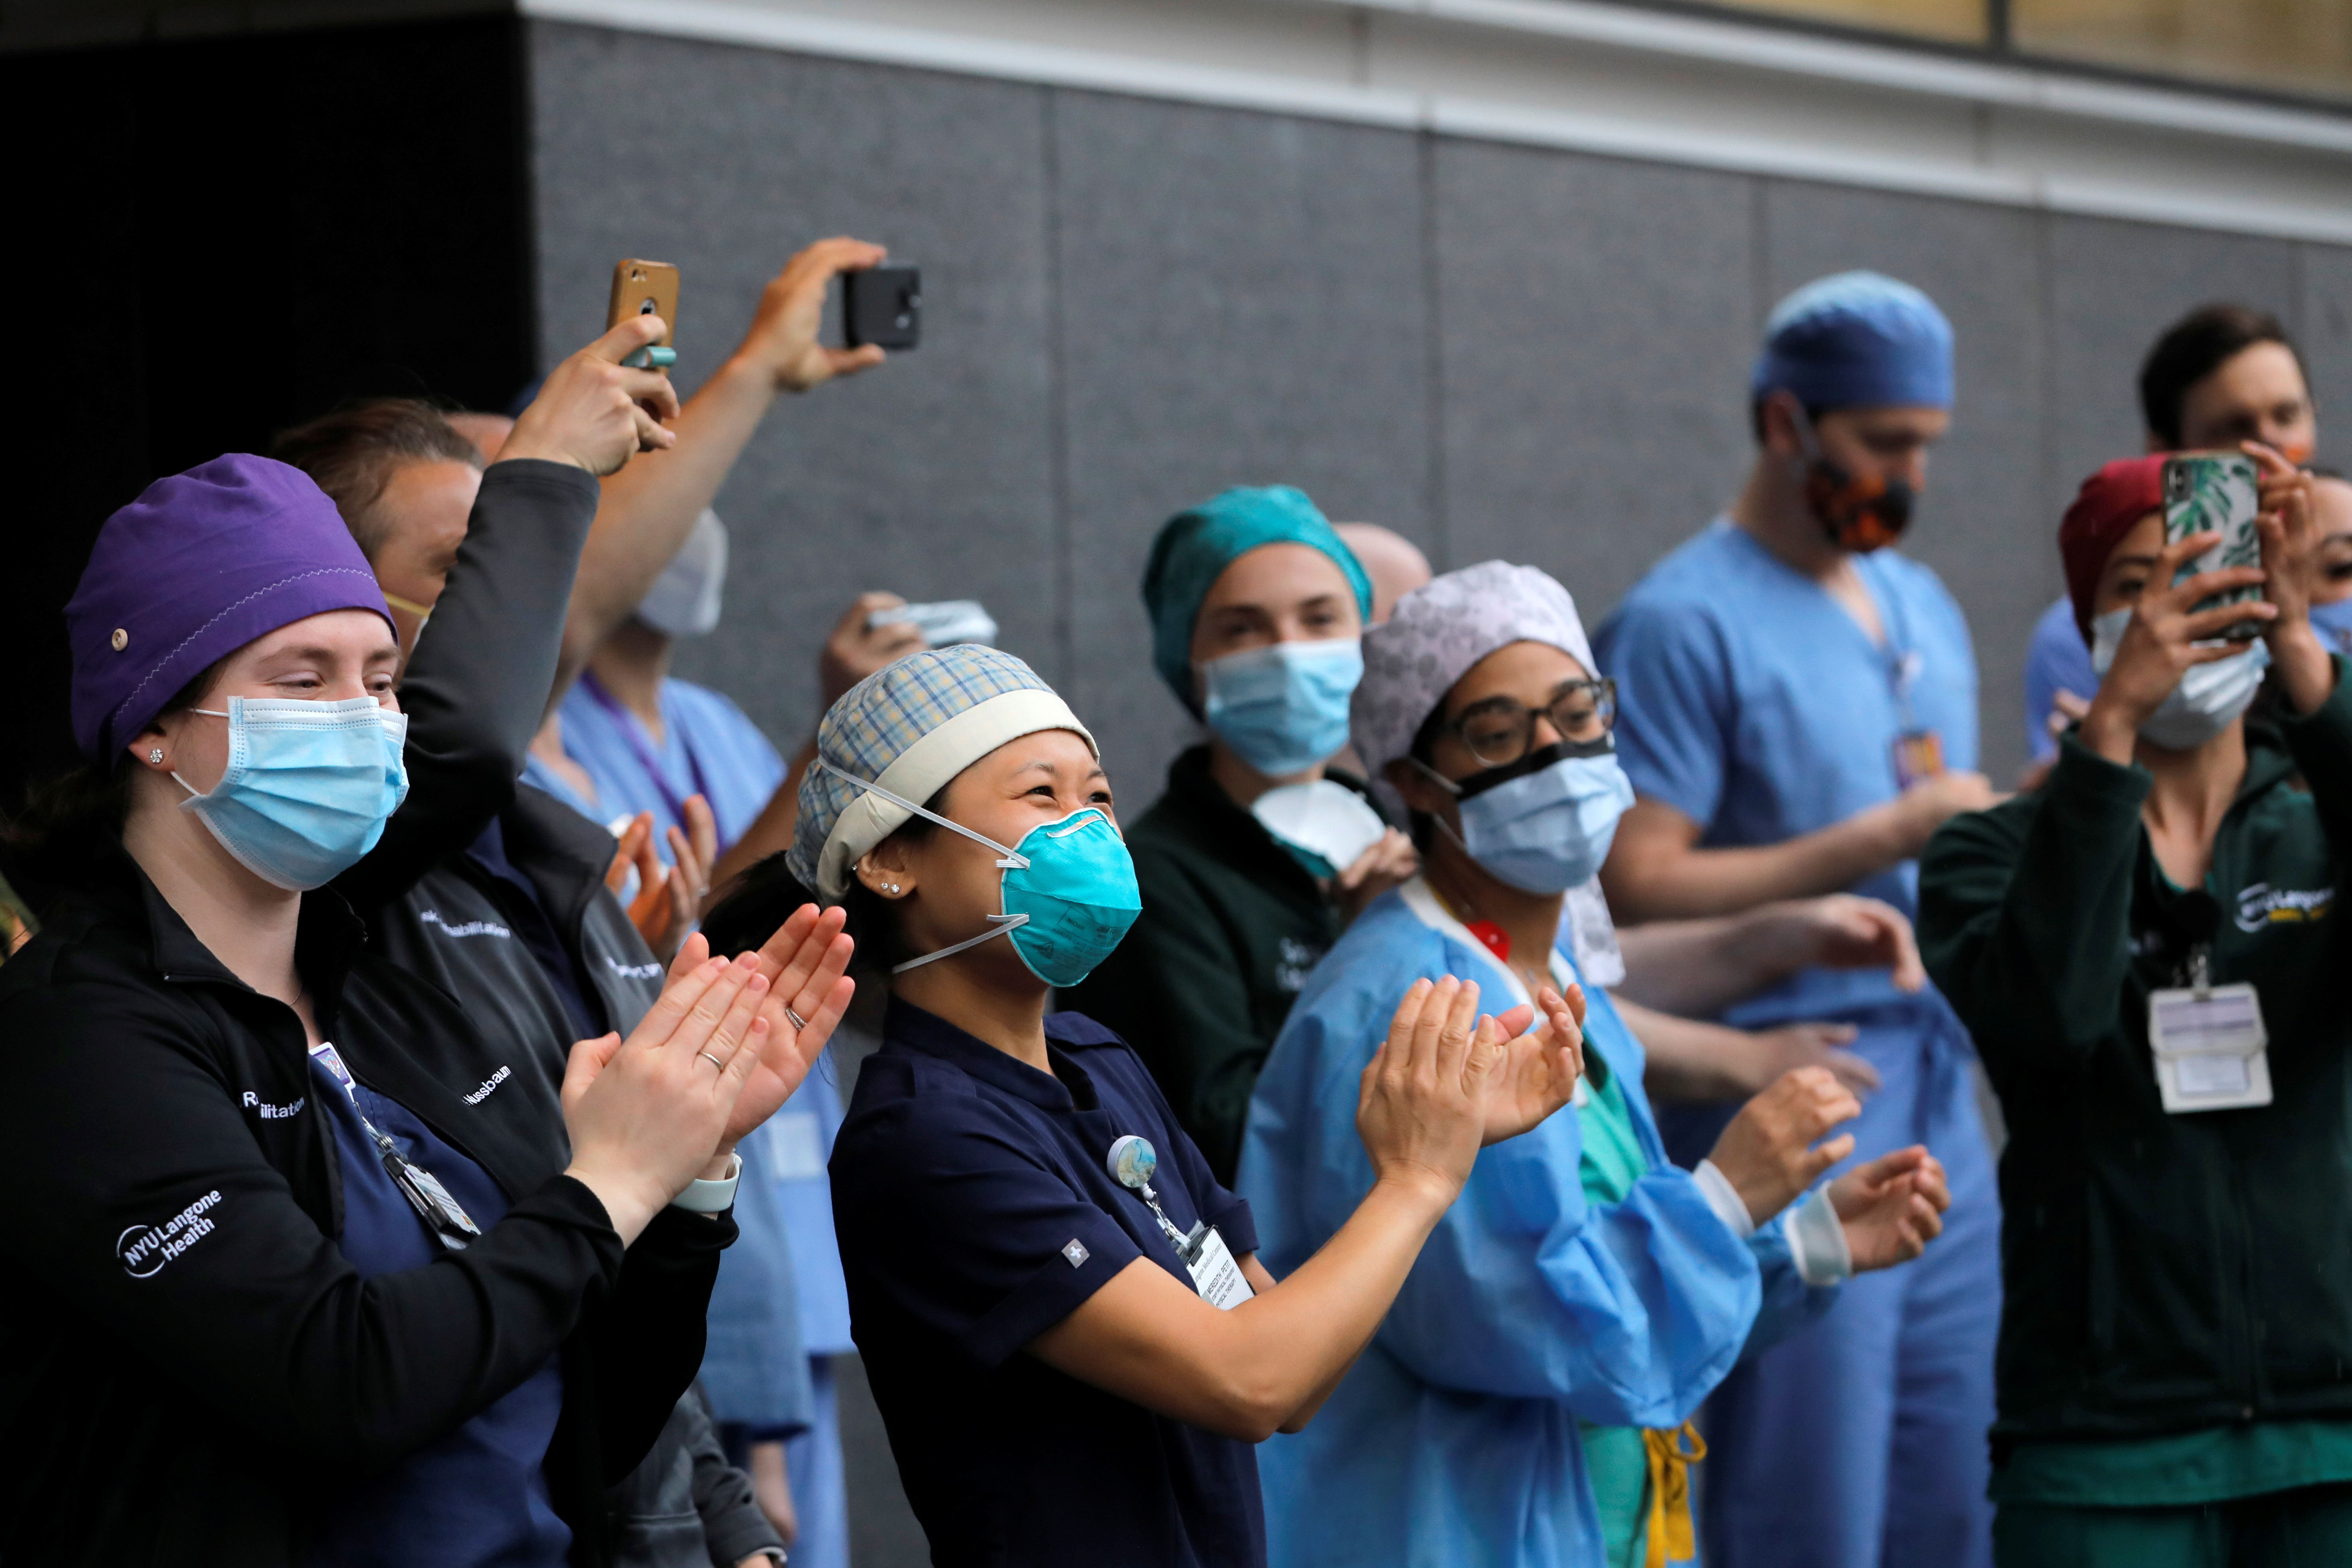 Healthcare workers react as people clap for them on National Nurse Day outside NYU Langone Health during the outbreak of the coronavirus disease (COVID-19) in the Manhattan borough of New York City, U.S., May 6, 2020. REUTERS/Andrew Kelly - RC2BJG9A82KZ